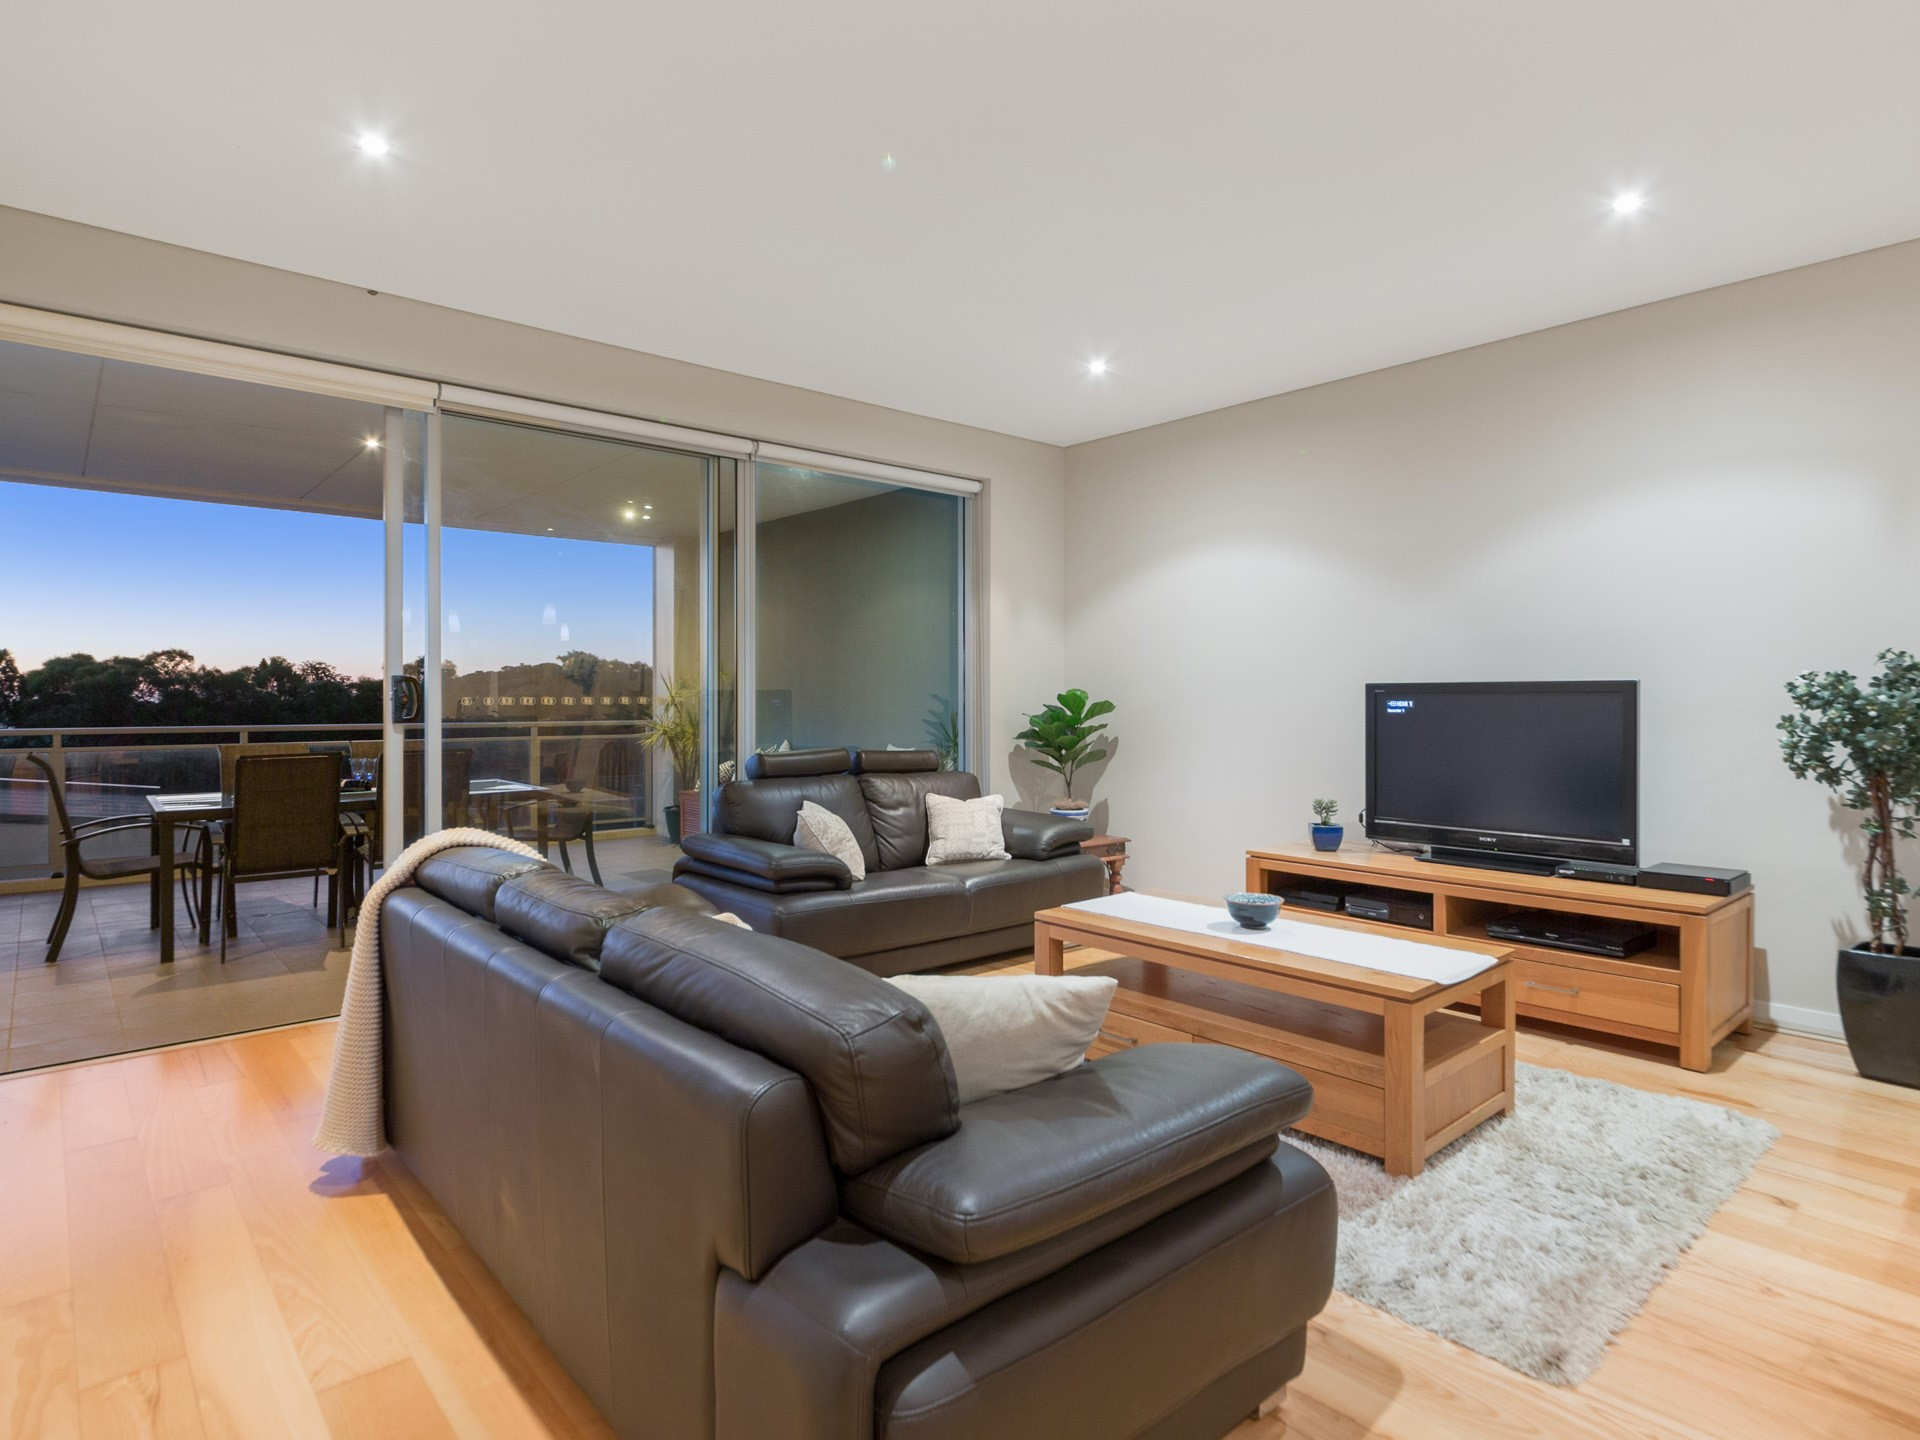 Property for sale in NORTH COOGEE, 2/52 Rollinson Road : Attree Real Estate